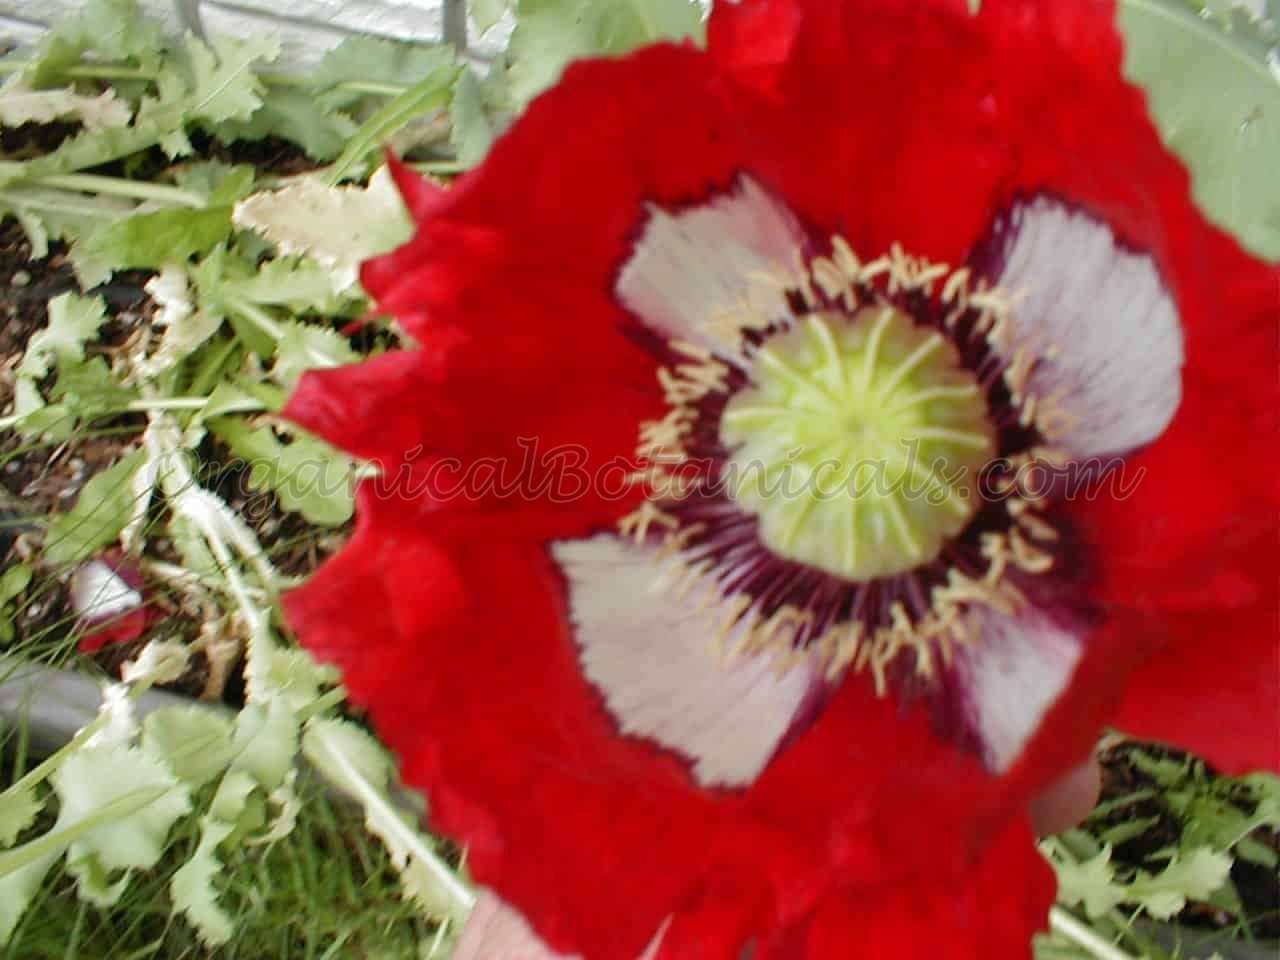 USA Flag RED White Blue papaver somniferum poppy flower | Seed by OrganicalBotanicals